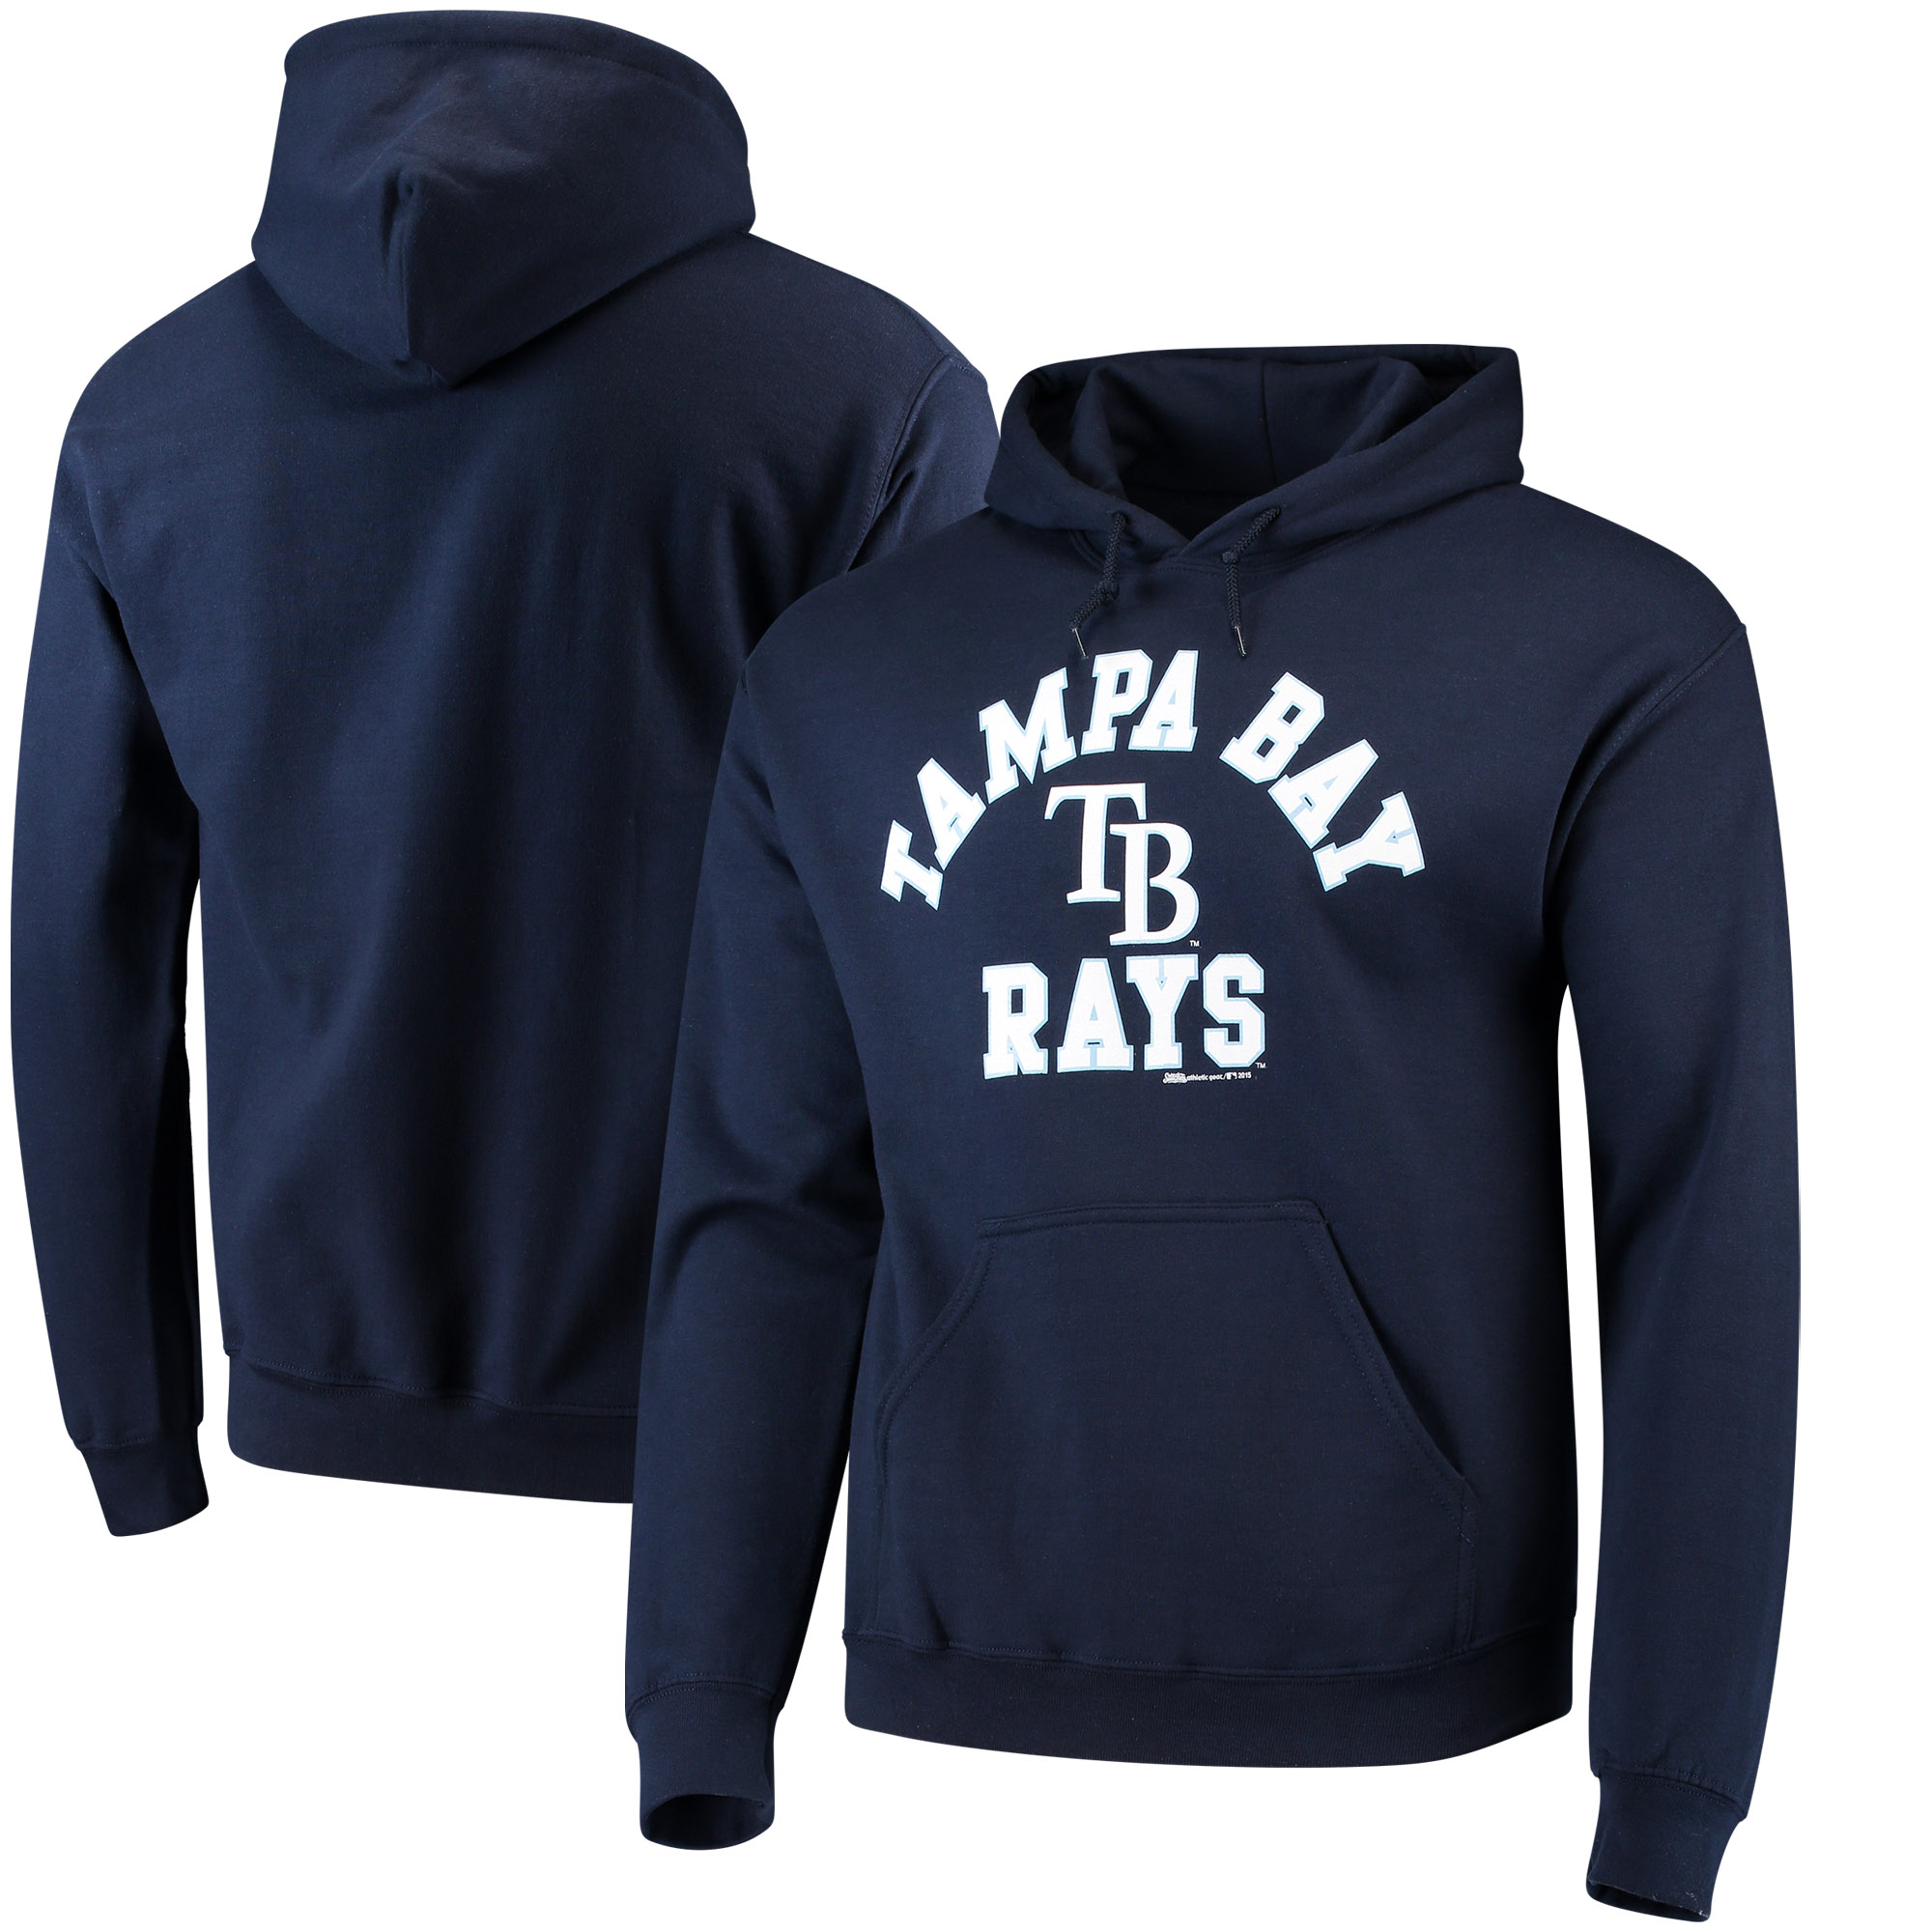 Tampa Bay Rays Stitches Fastball Fleece Pullover Hoodie - Navy Blue